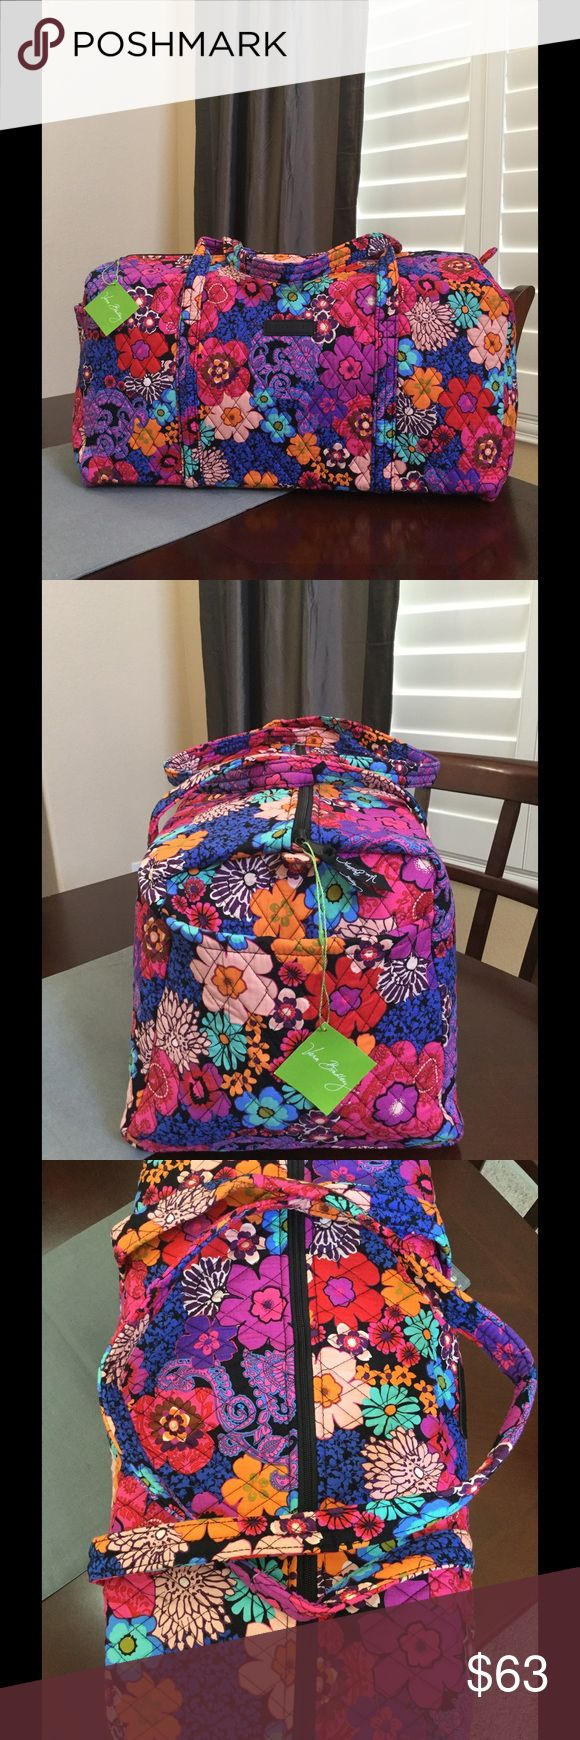 "NWT VERA BRADLEY LARGE DUFFEL BAG Brand new with tags Vera Bradley large duffel  Floral Fiesta  pattern  15"" strap drop Handy outside end pocket Folds flat for easy storing Dimensions 22"" W x 11½"" H x 11½"" D - 15"" strap drop  Smoke/pet free home Vera Bradley Bags Travel Bags"